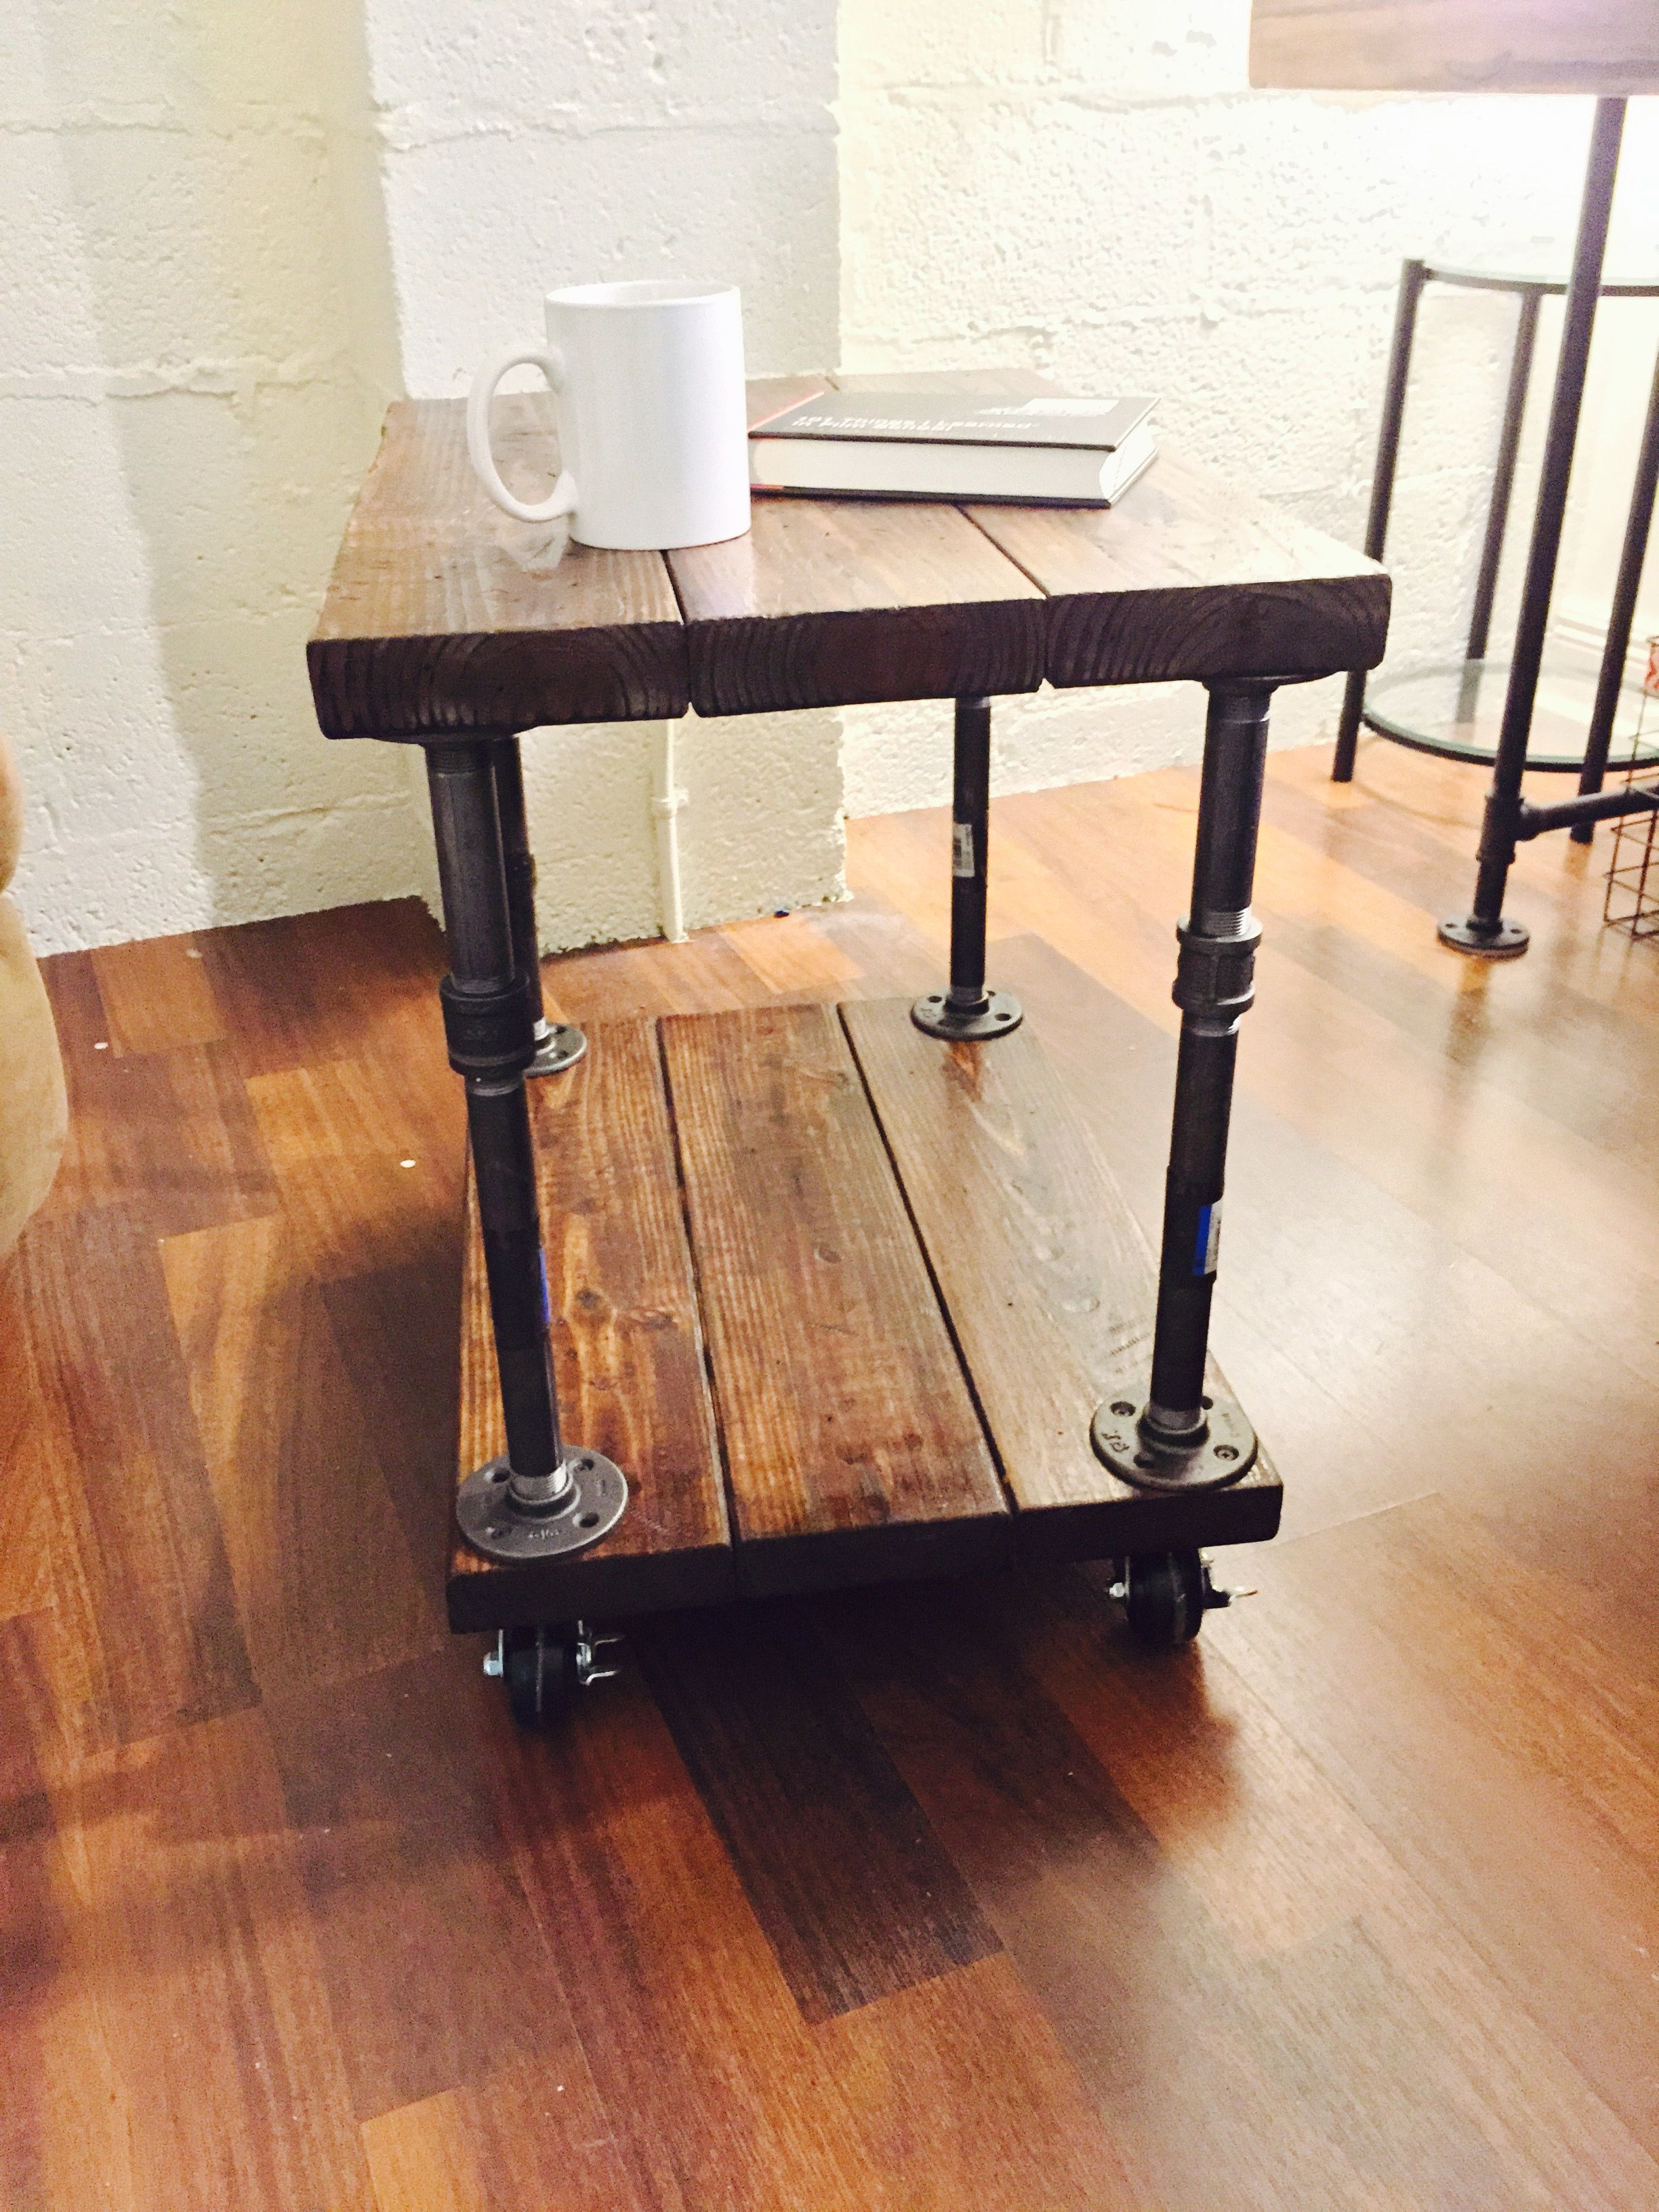 Beautiful Industrial Style Coffee Or End Table Made From Reclaimed Wood,  Iron Pipe, And